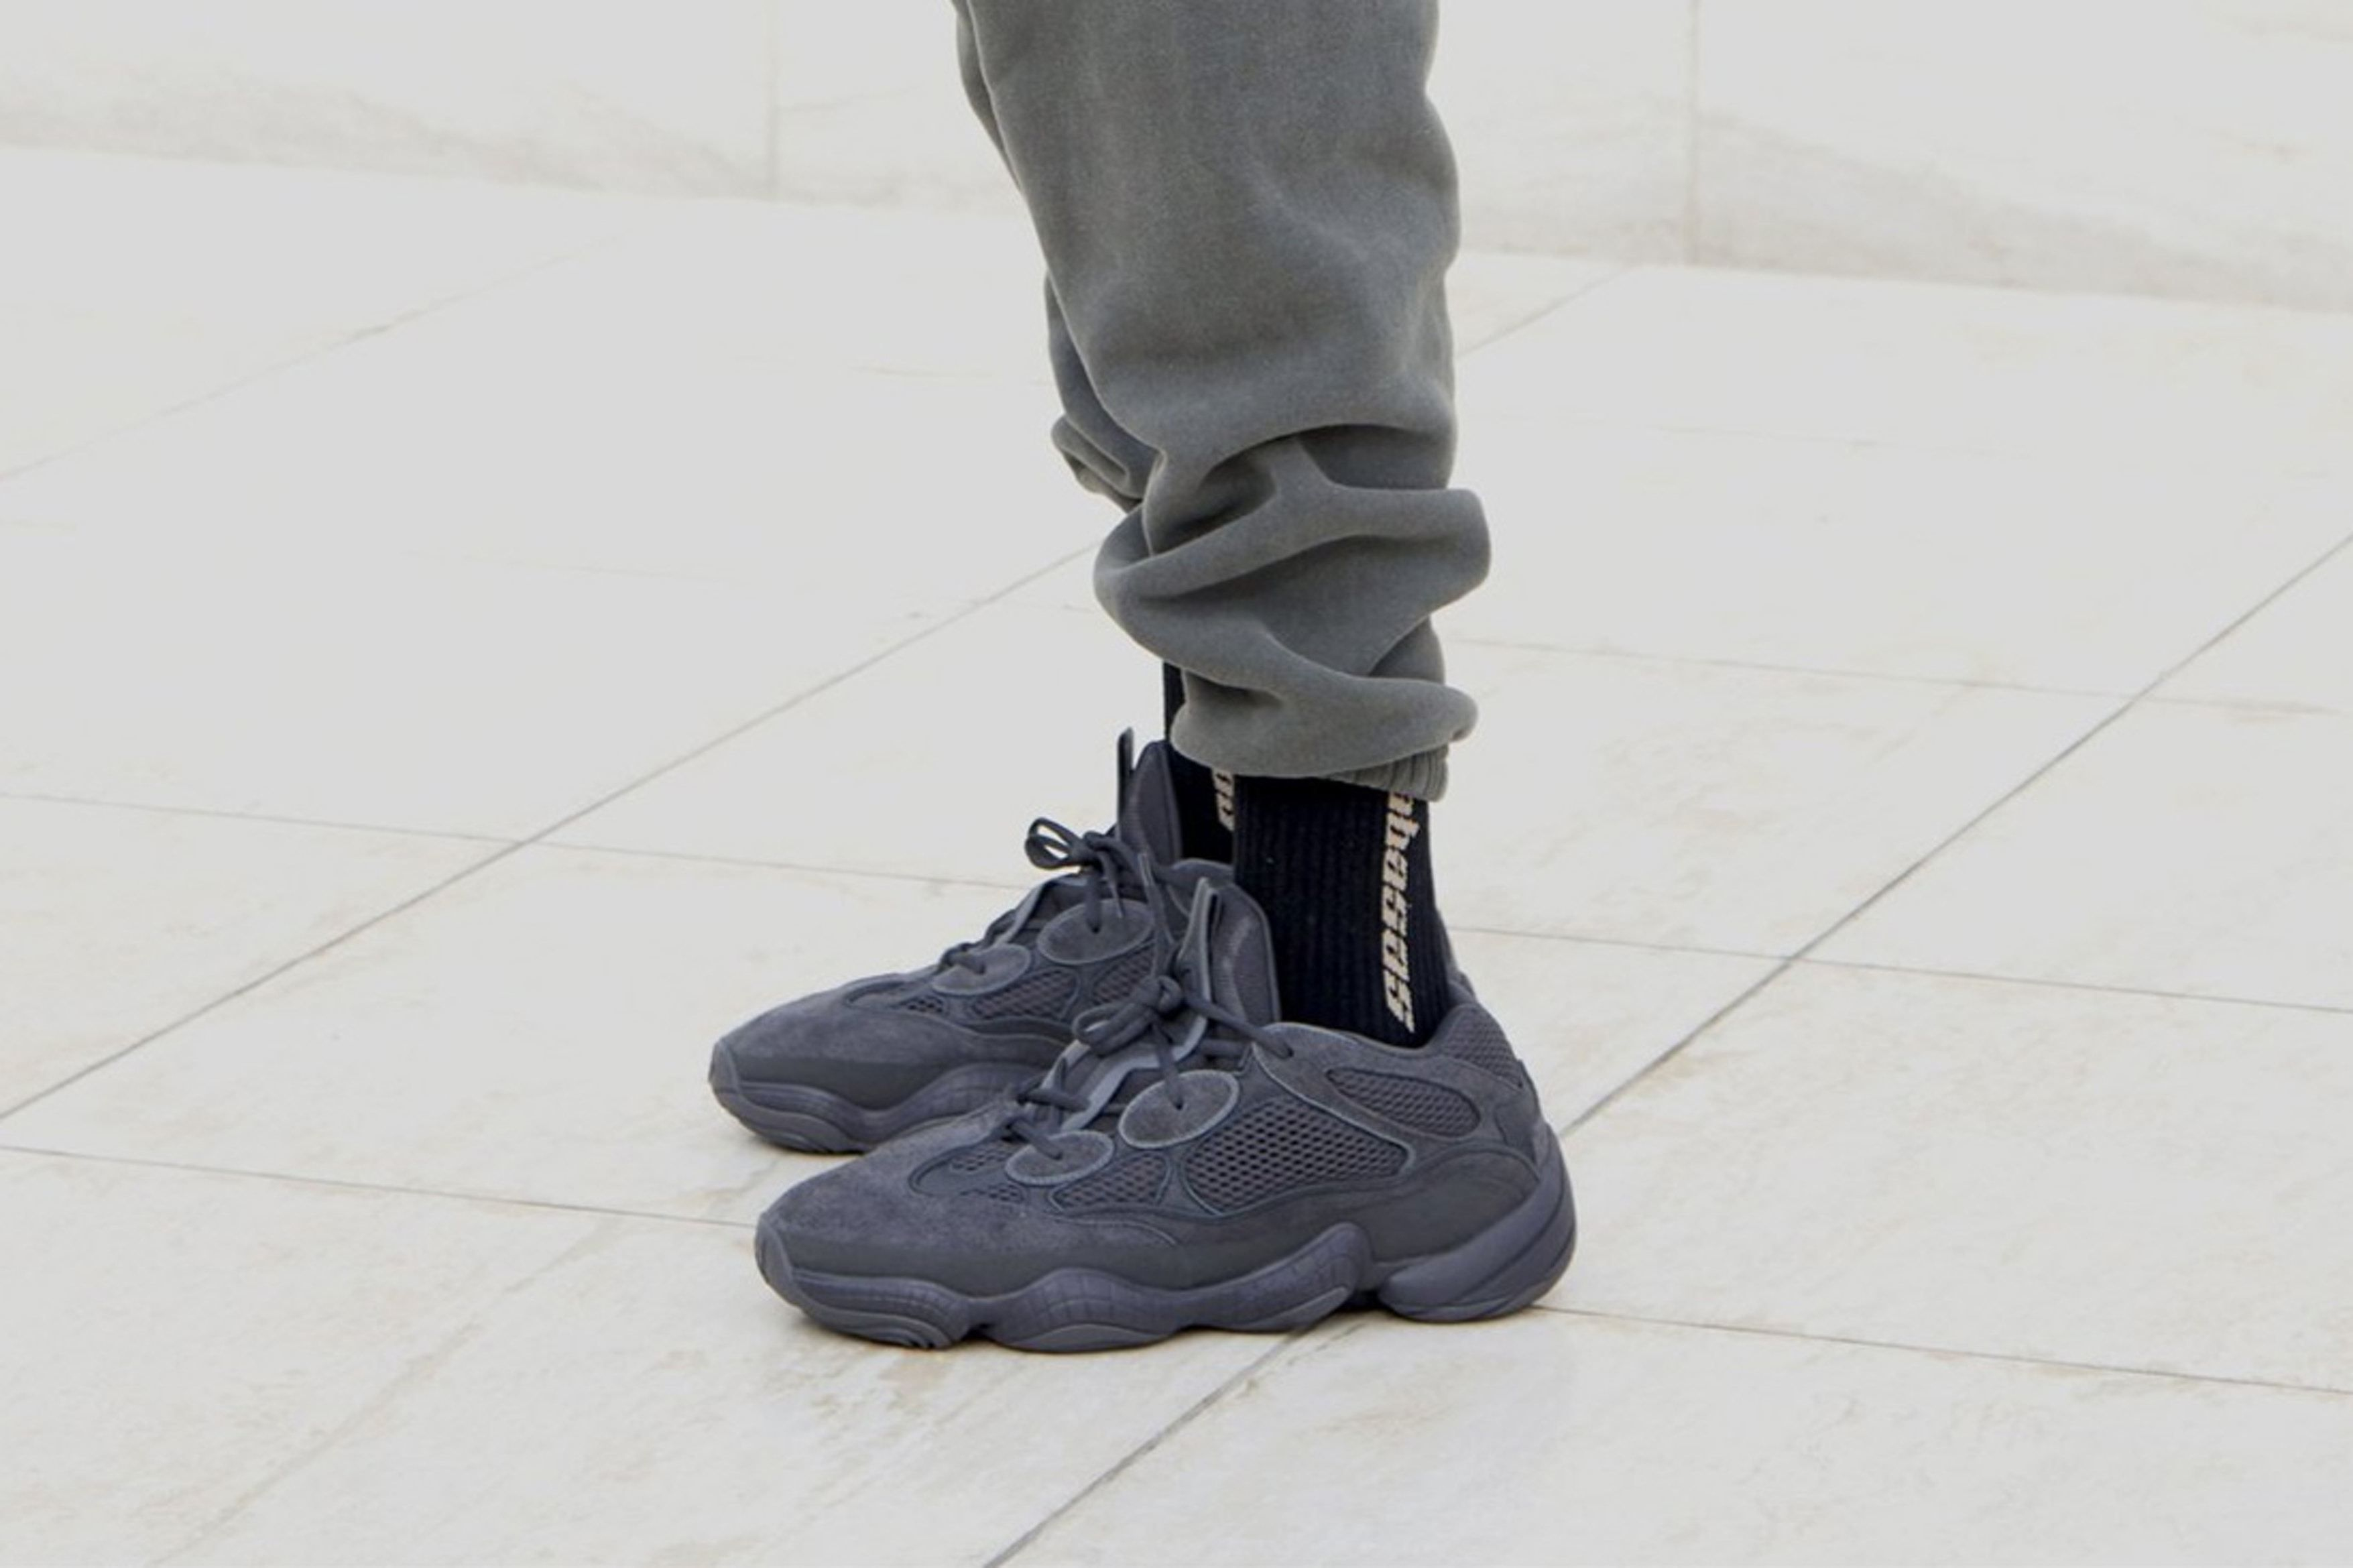 adidas Yeezy Sneakers in Utility Black , EU Kicks Sneaker Magazine